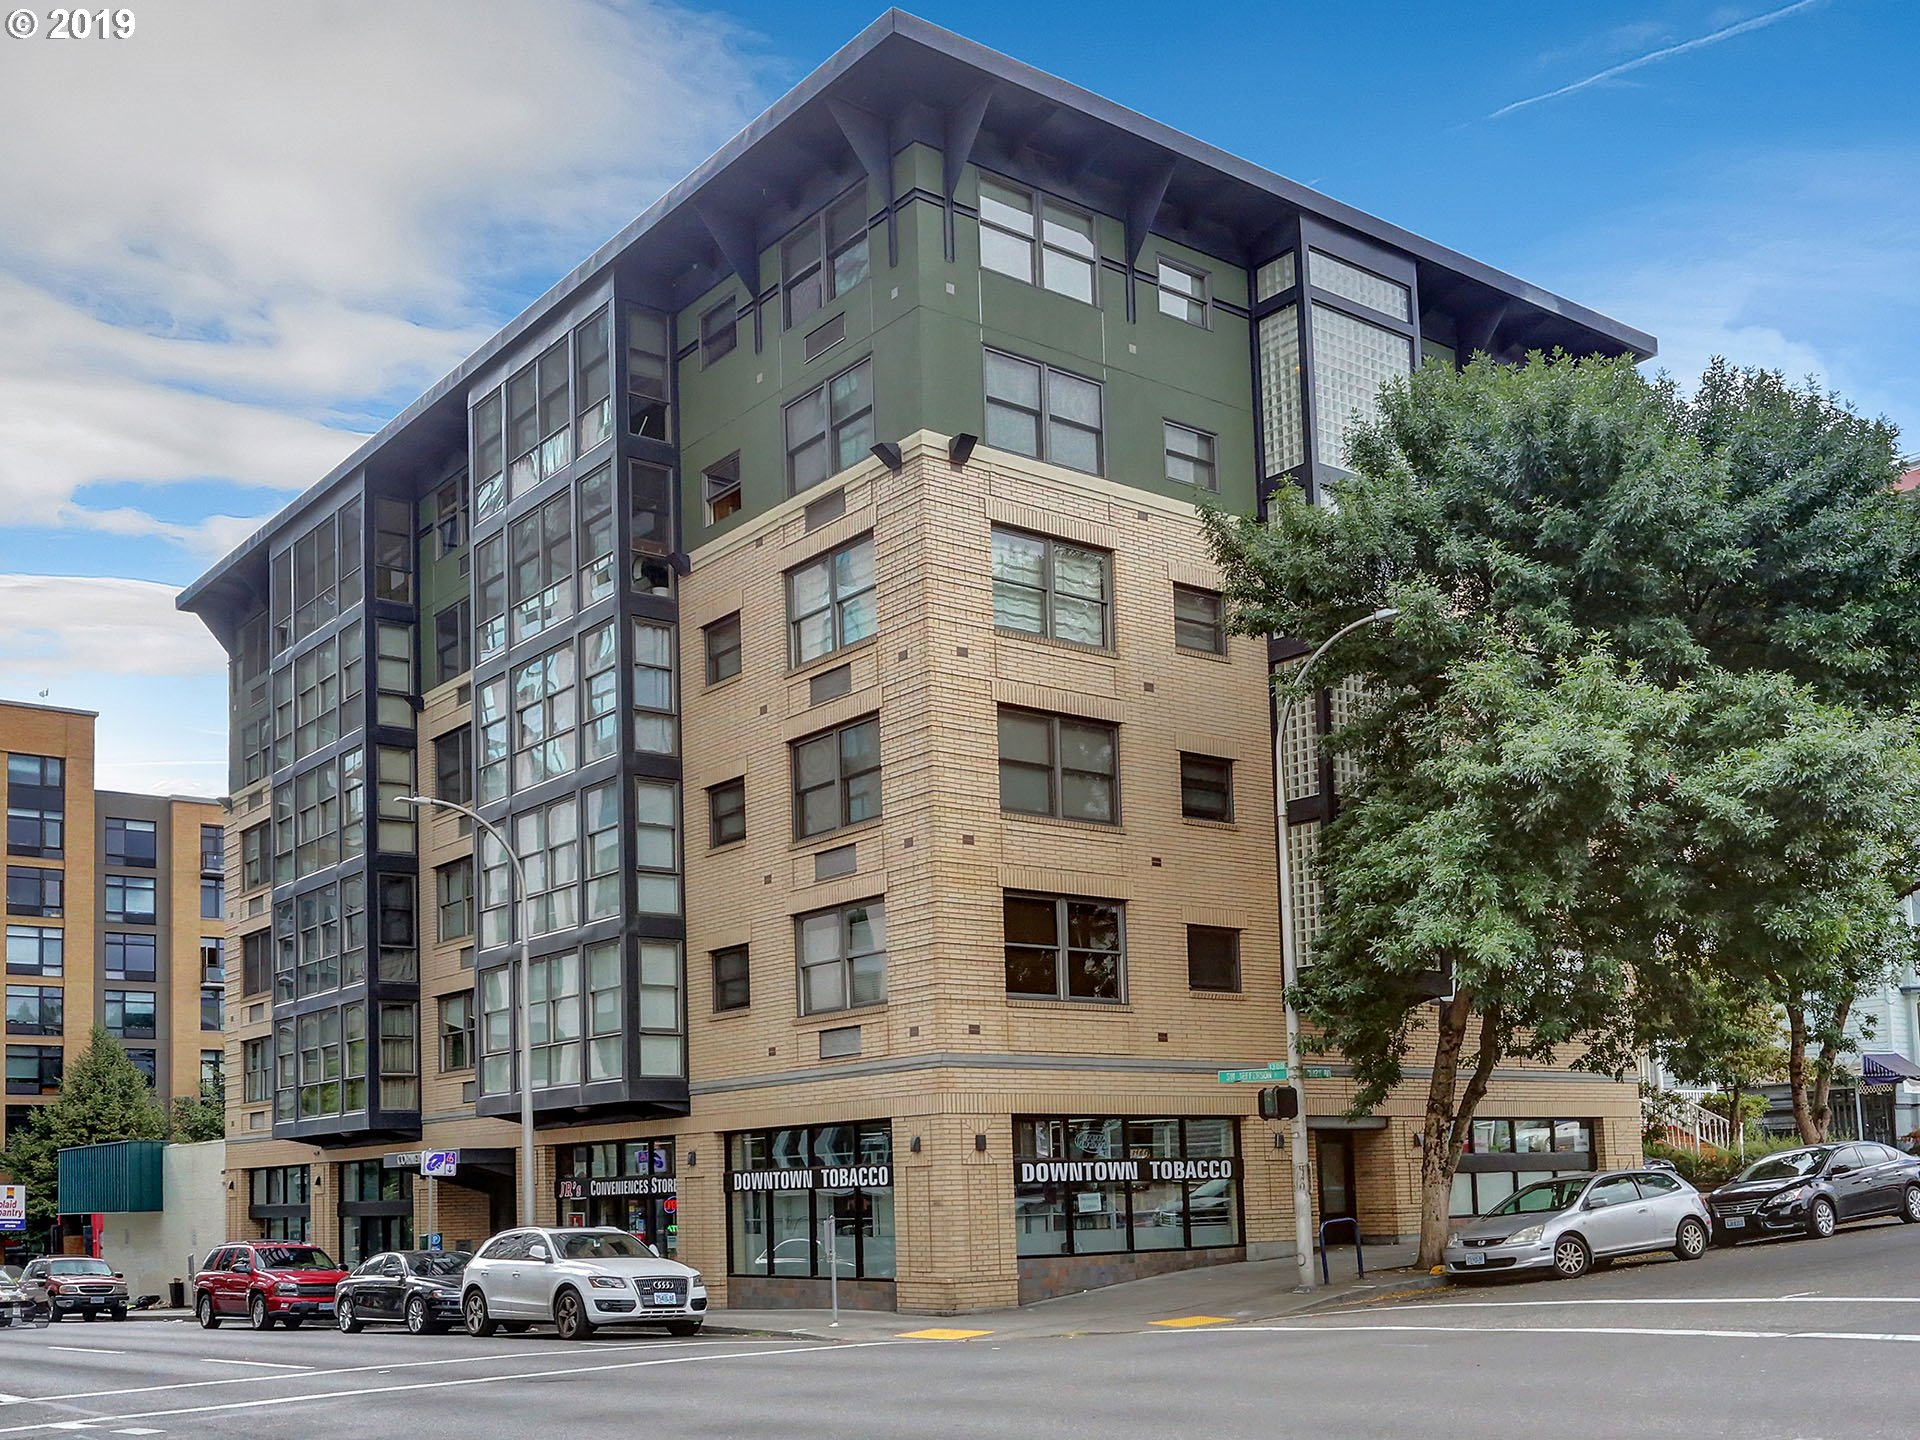 Location is key with this downtown Portland condo in the heart of the Cultural District.  Close to coffee shop, PSU, Art Museum, Central library, Brewery Blocks, Saturday Market, Safeway and more! Engineered hardwood floors and brand new stainless steel appliances. Washer/dryer combo in unit, locked basement storage and bike storage.